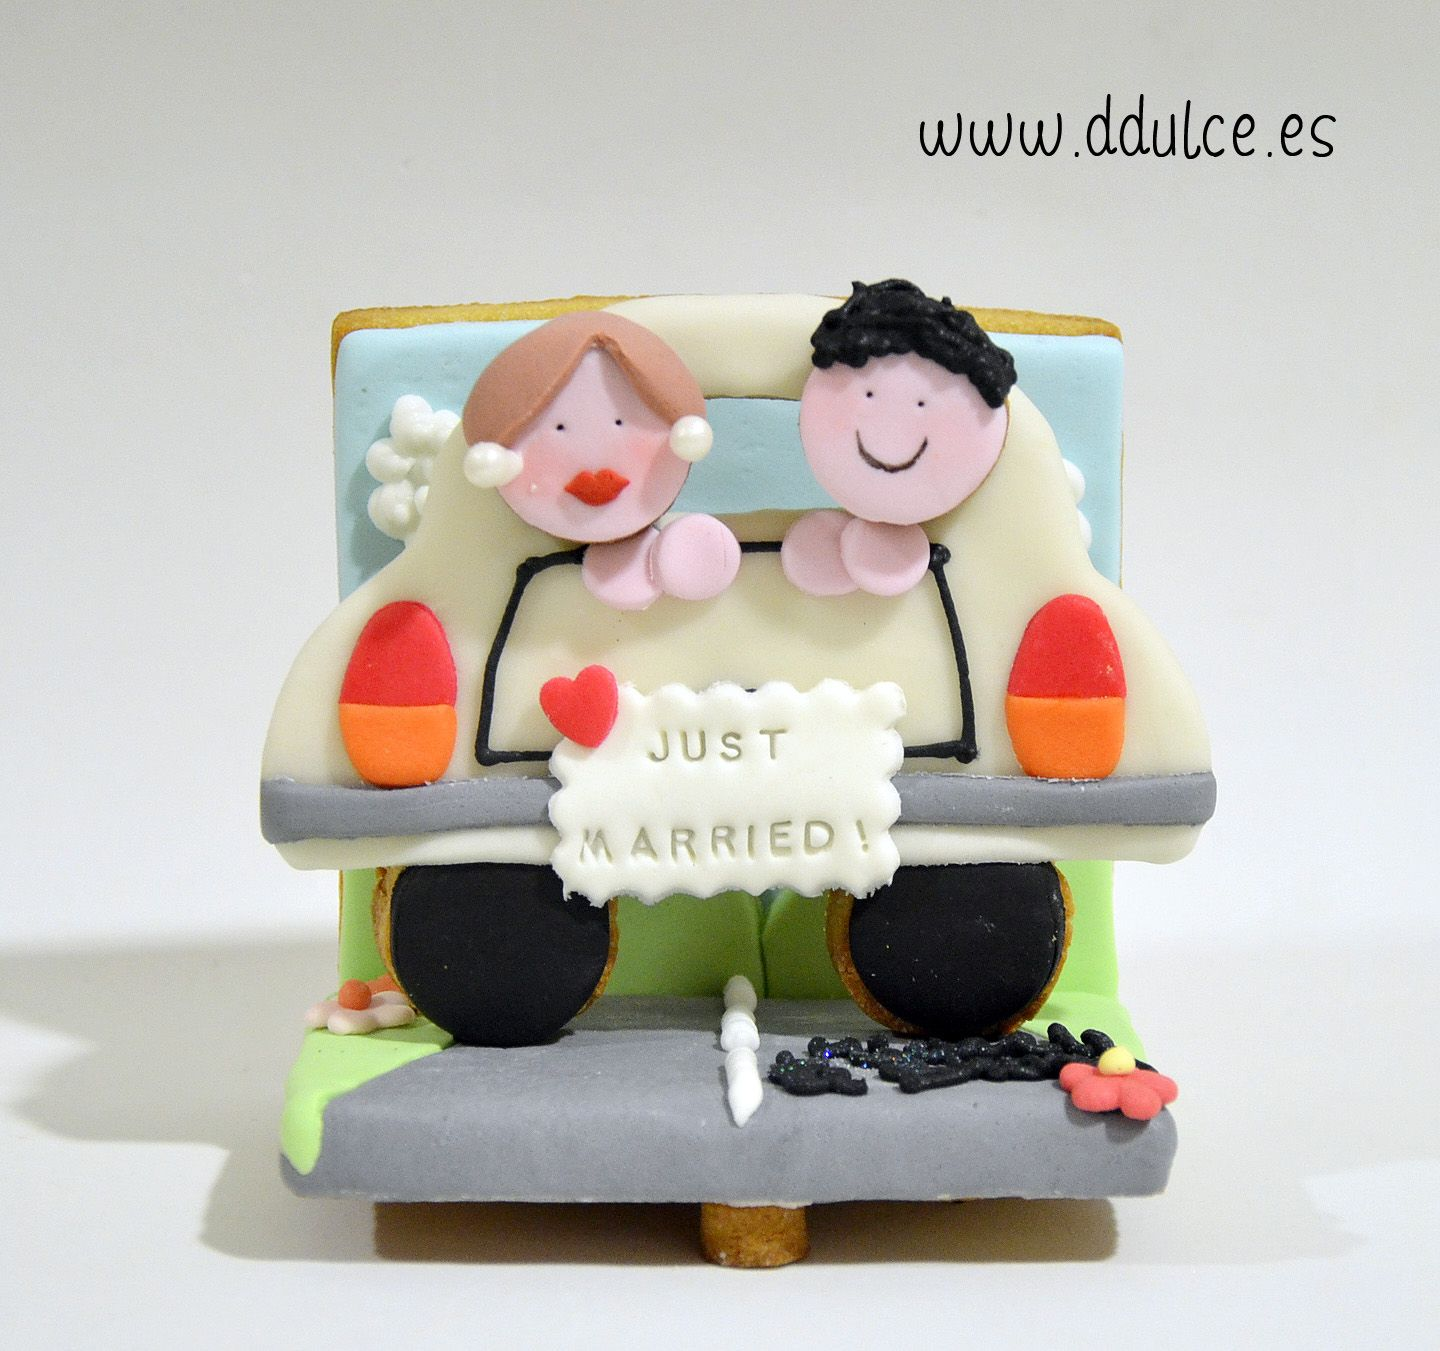 #galletadiorama #modelcookie #reciencasados #justmarried #boda #wedding #ddulcedulcesdetalles